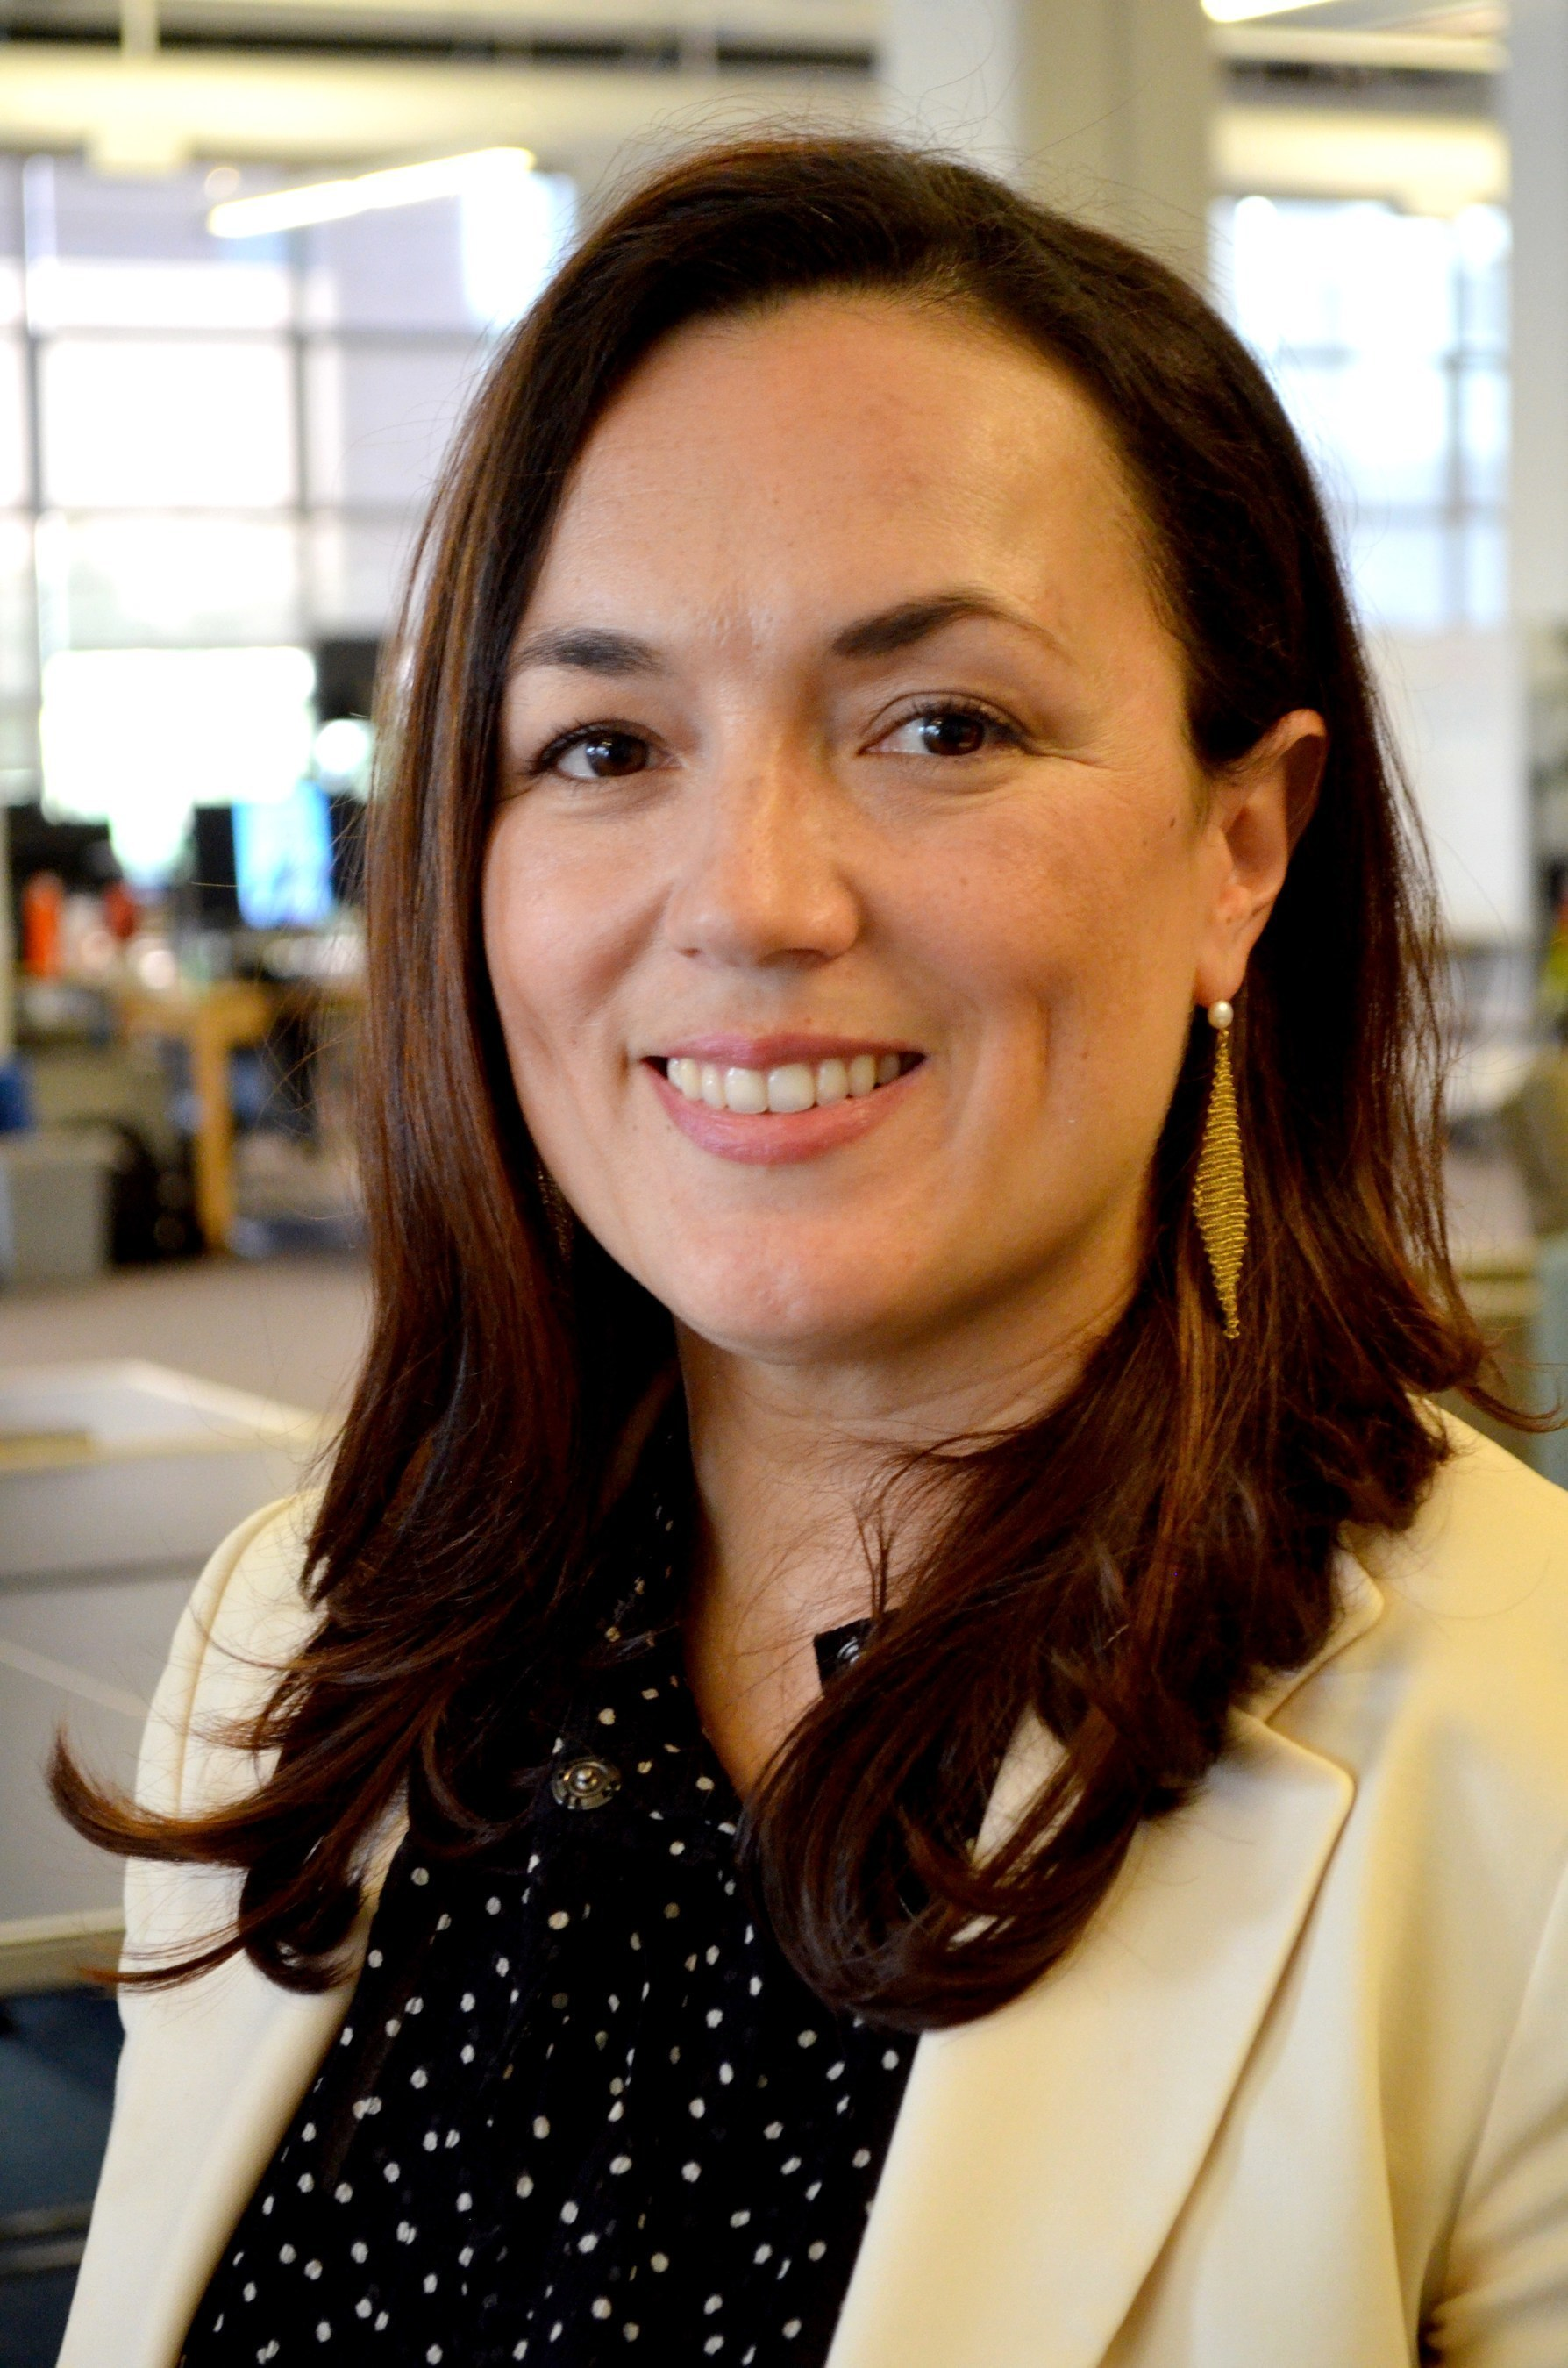 Xochitl Cazador, Senior Director of Growth and Customer Success at Unitive